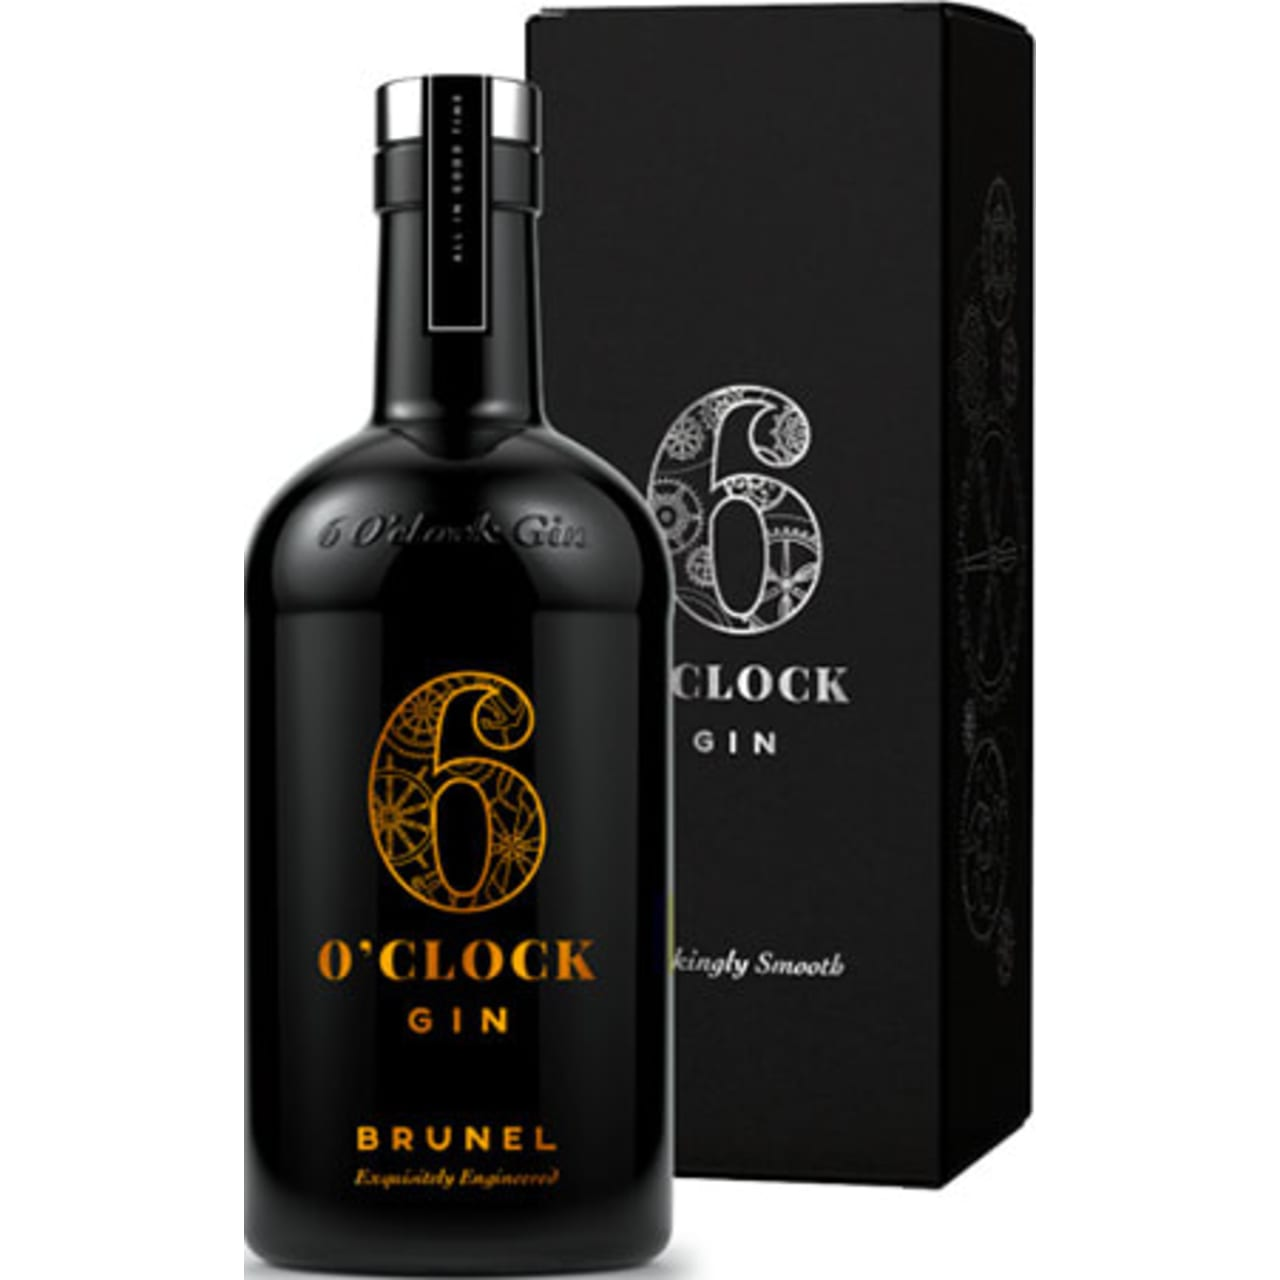 Product Image - 6 O'Clock Brunel Edition Gin